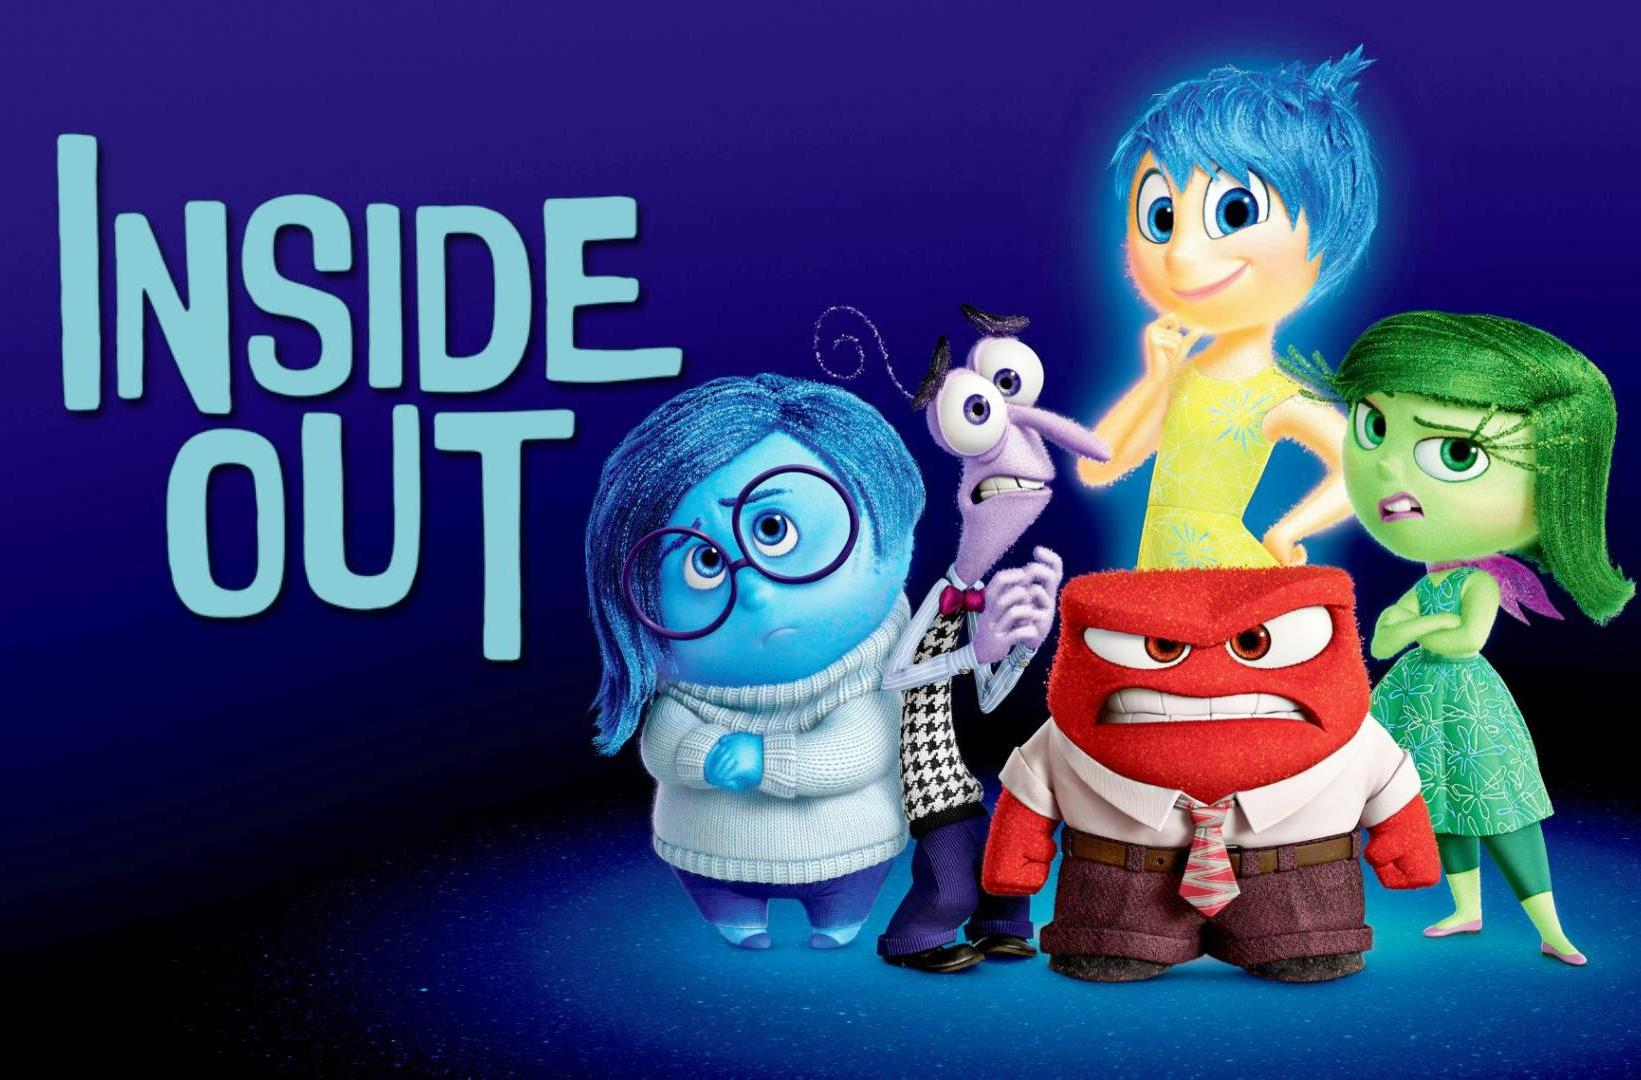 inside out full movie free hd